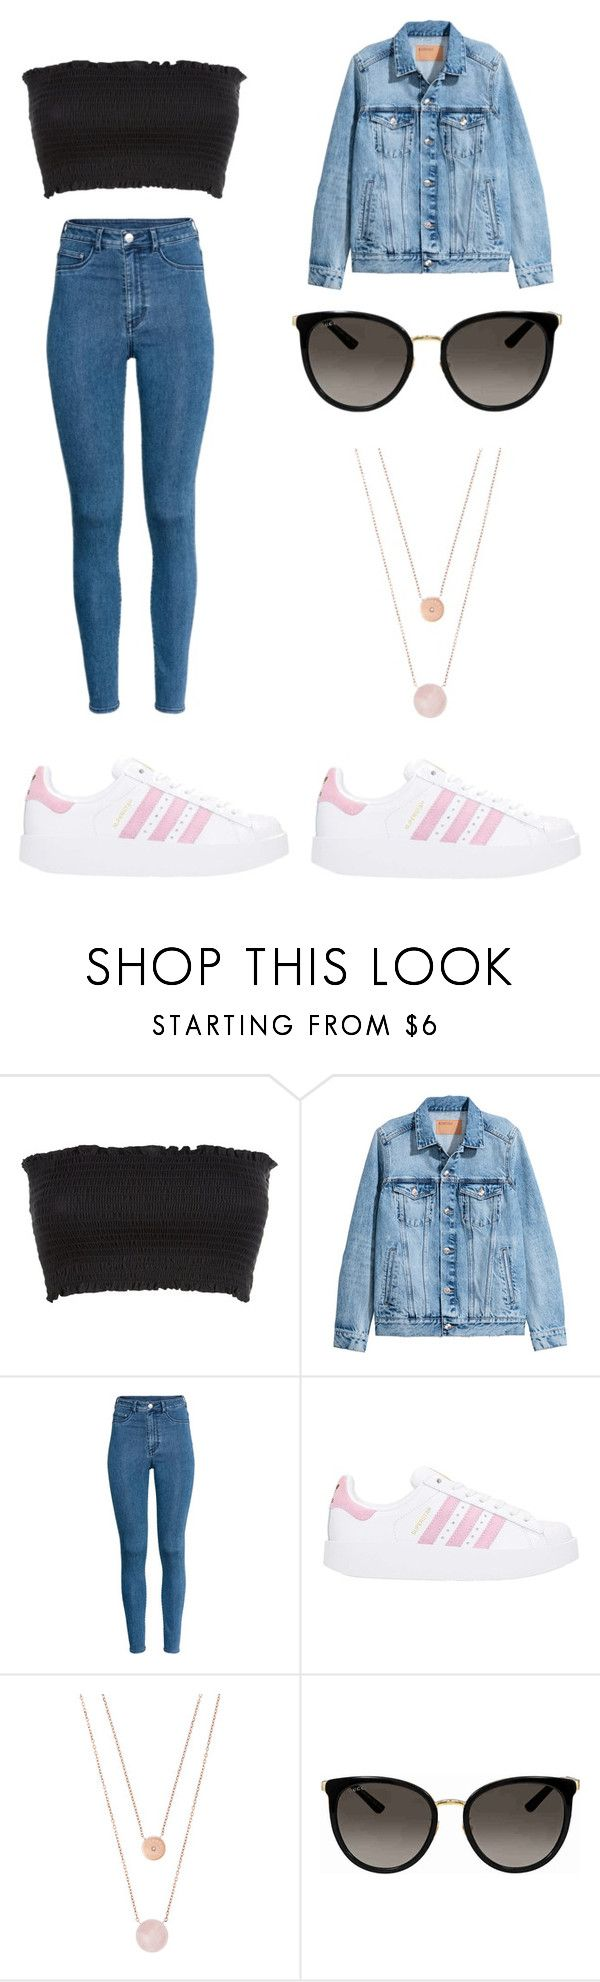 """""""Comfy and Cute"""" by indiac-joseph on Polyvore featuring H&M, adidas, Michael Kors and Gucci"""